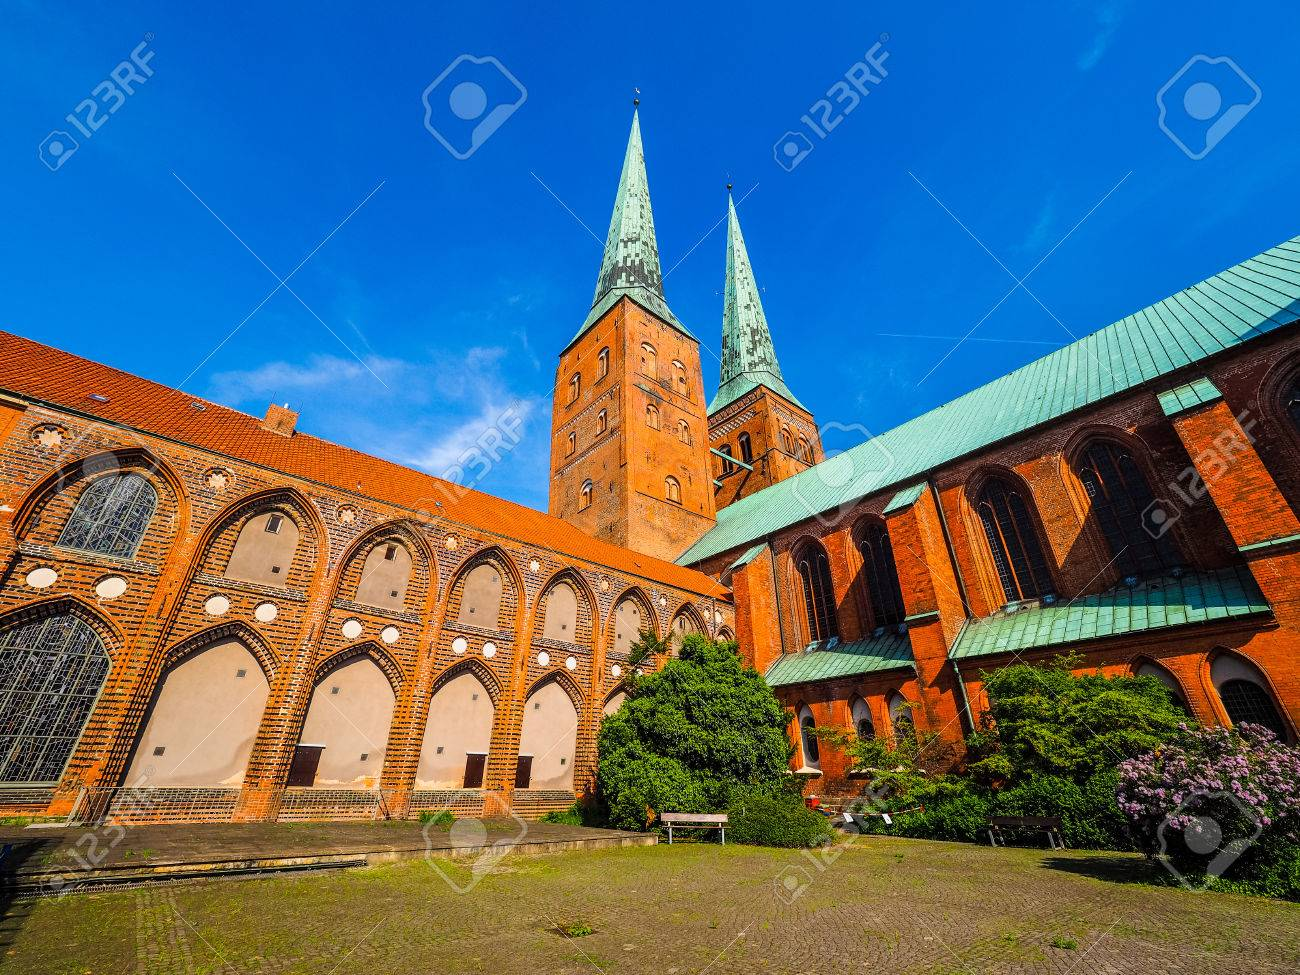 Luebecker Dom Glise Cathdrale Lbeck Allemagne Hdr Banque Dimages